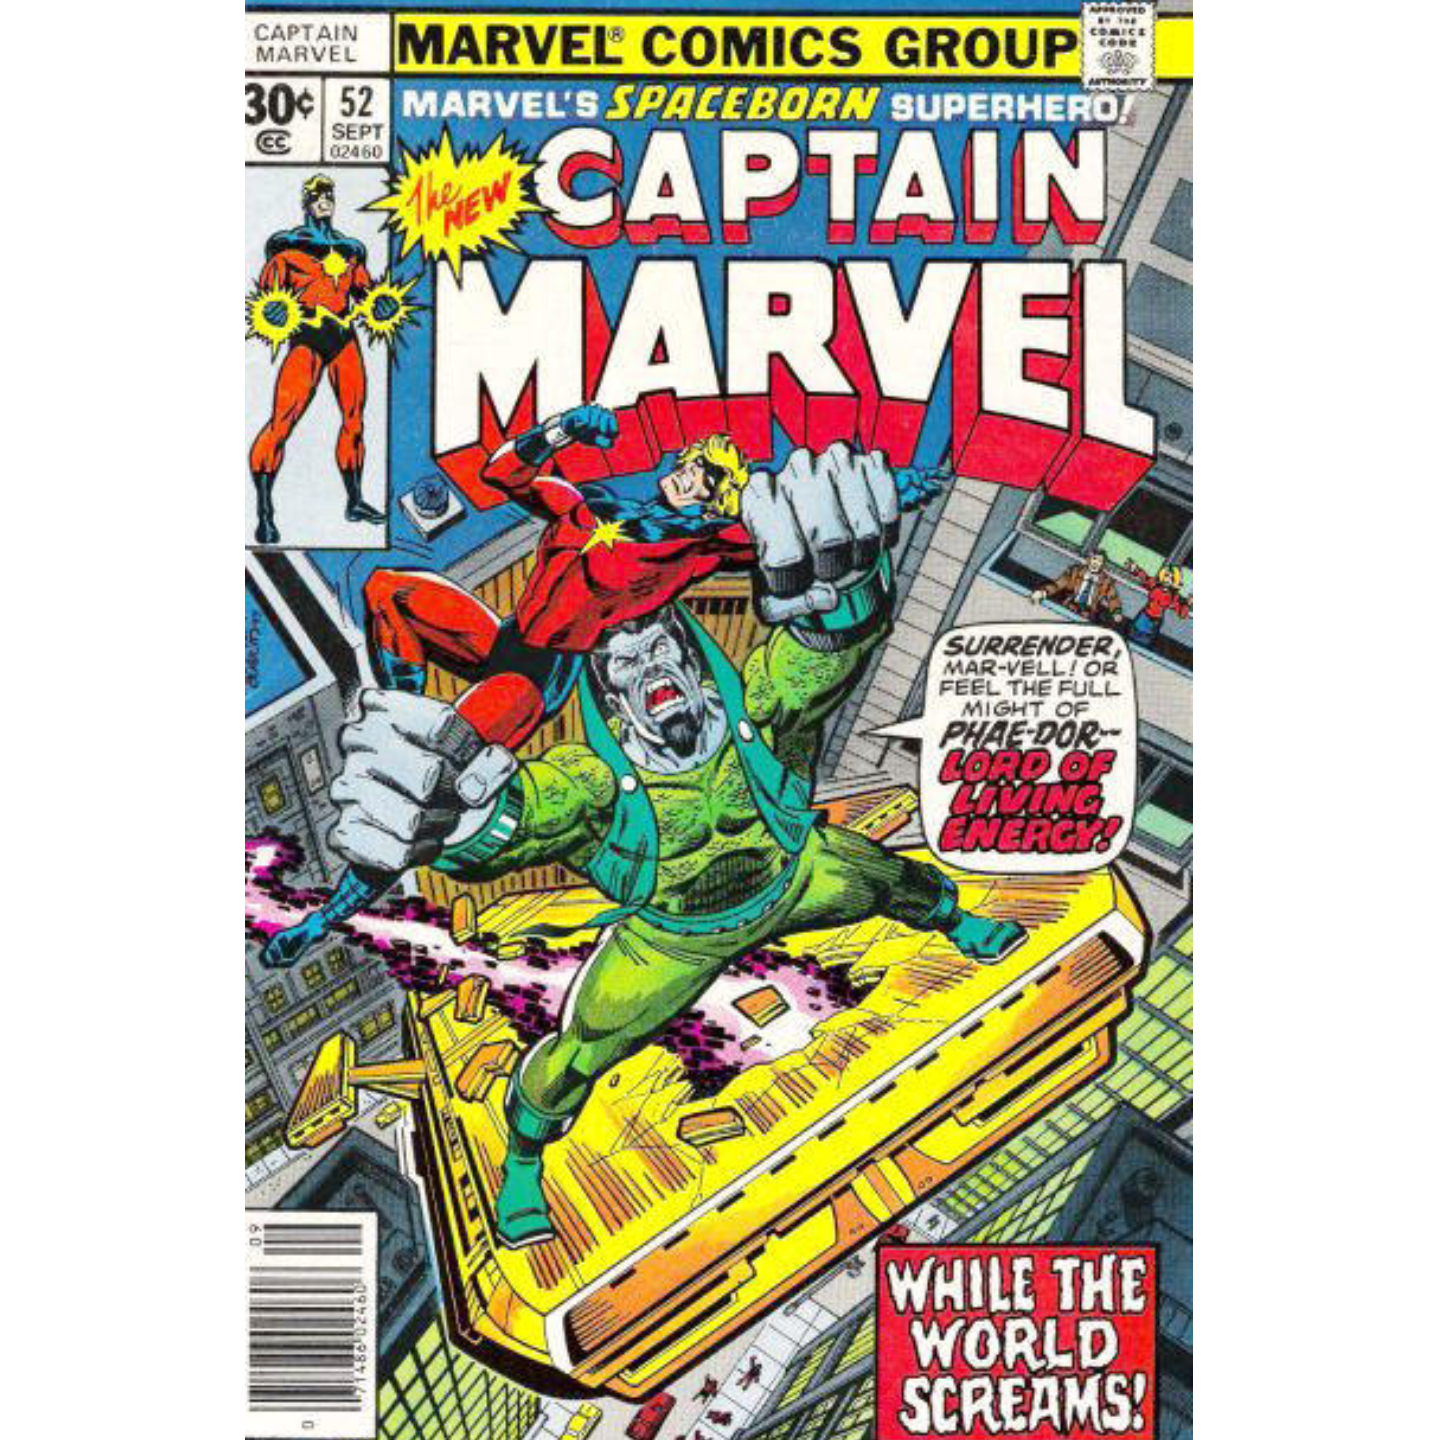 CAPTAIN MARVEL #52